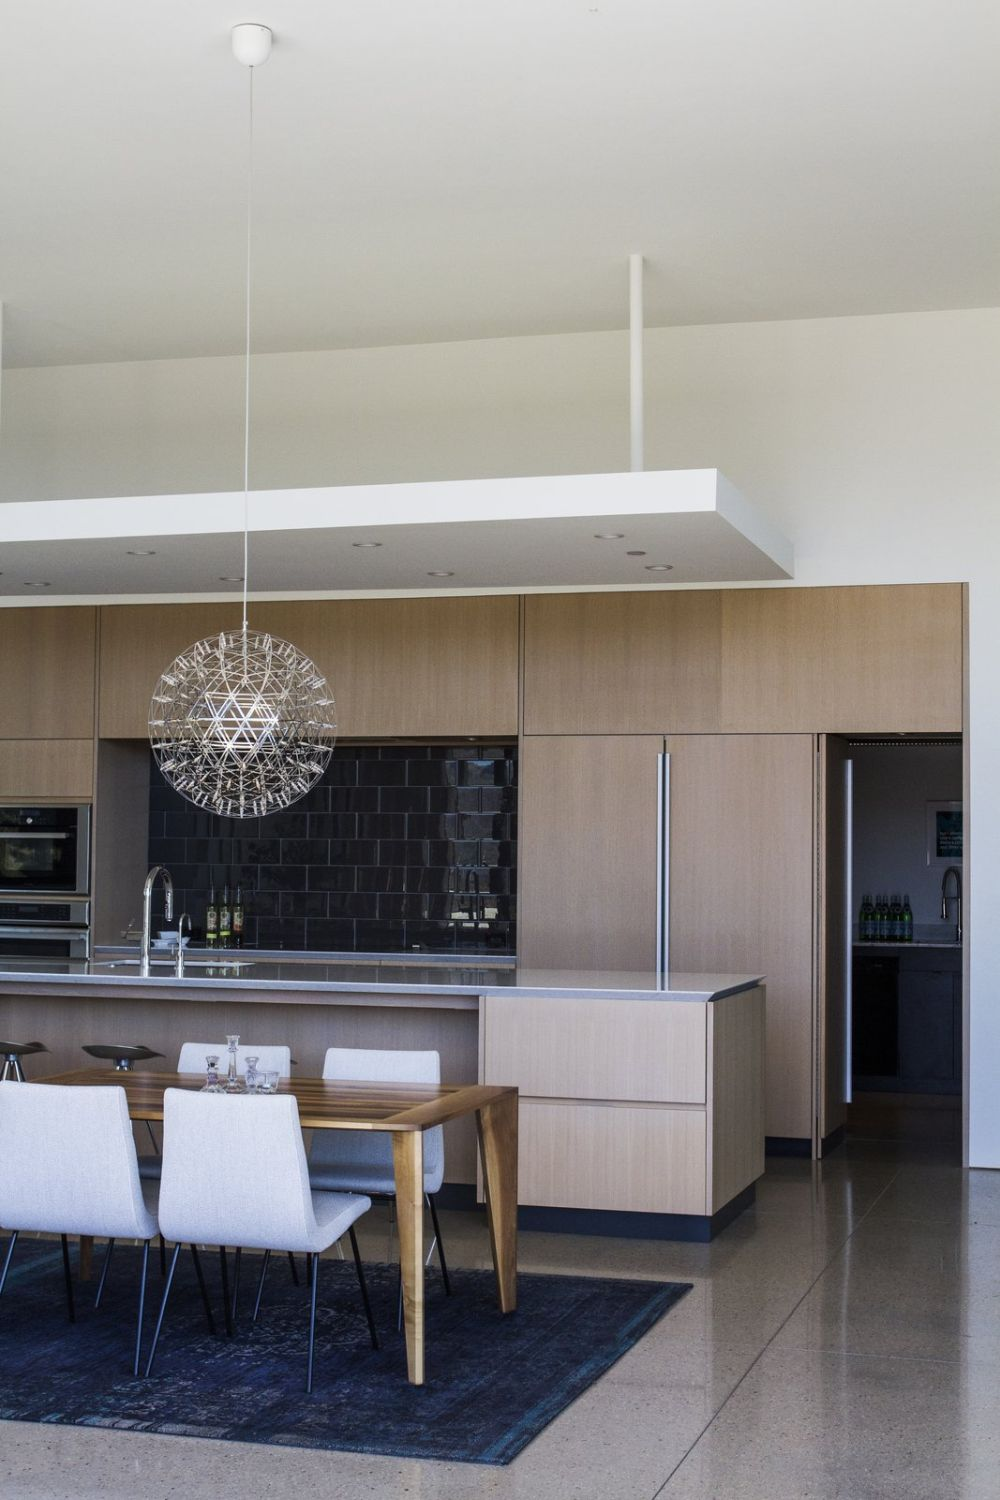 The kitchen, dining are and living room are combined into a big open space and the transition between them in seamless